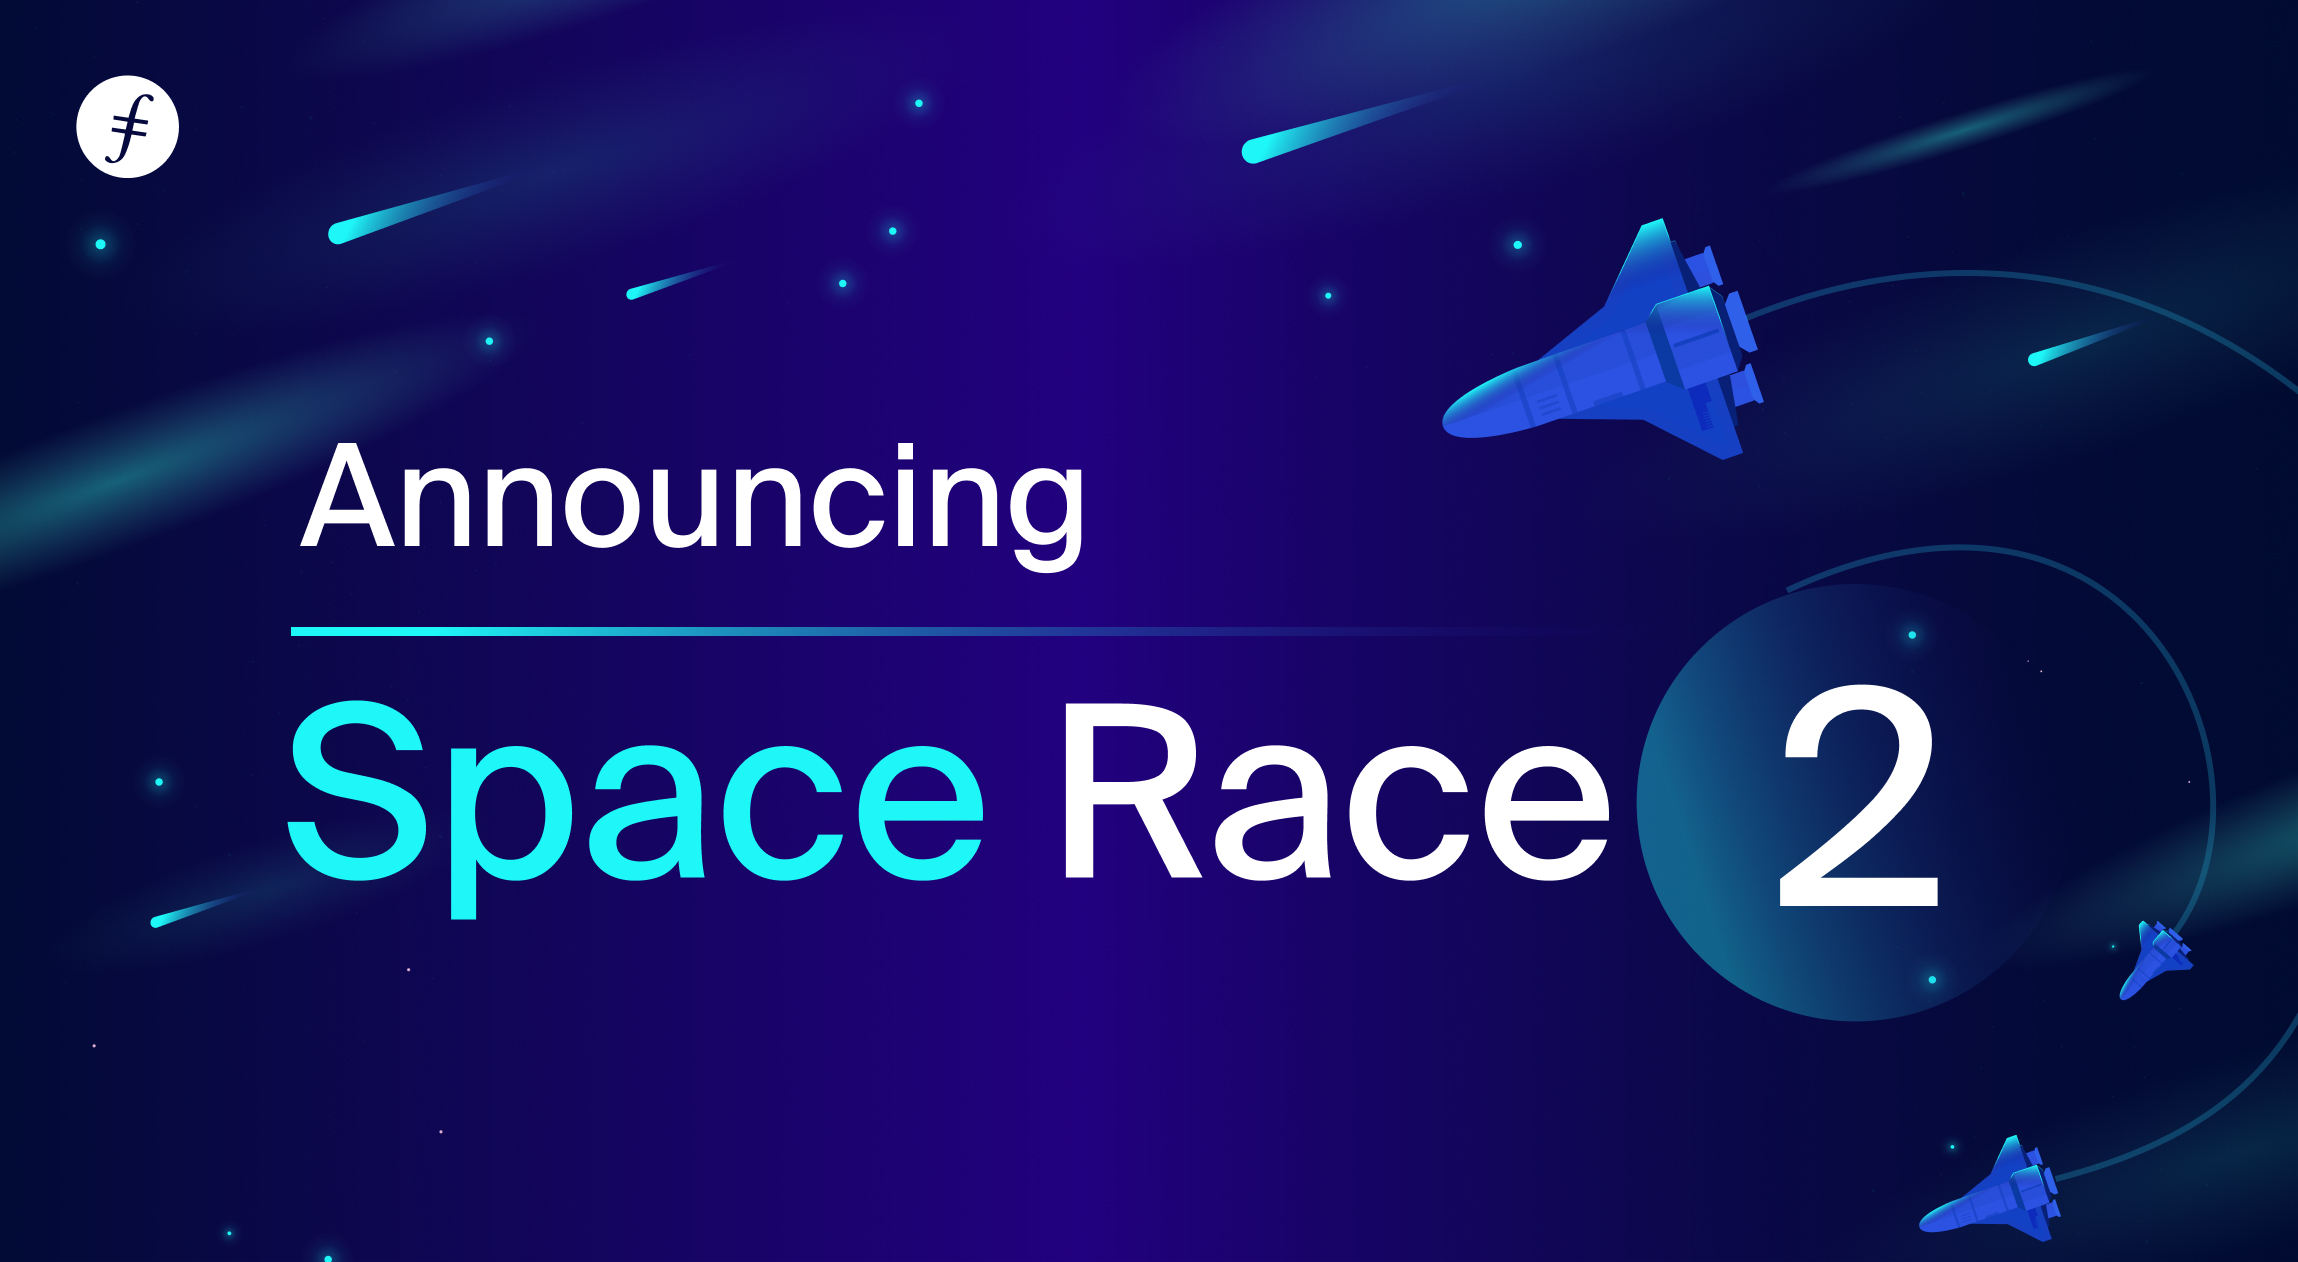 Announcing Space Race 2